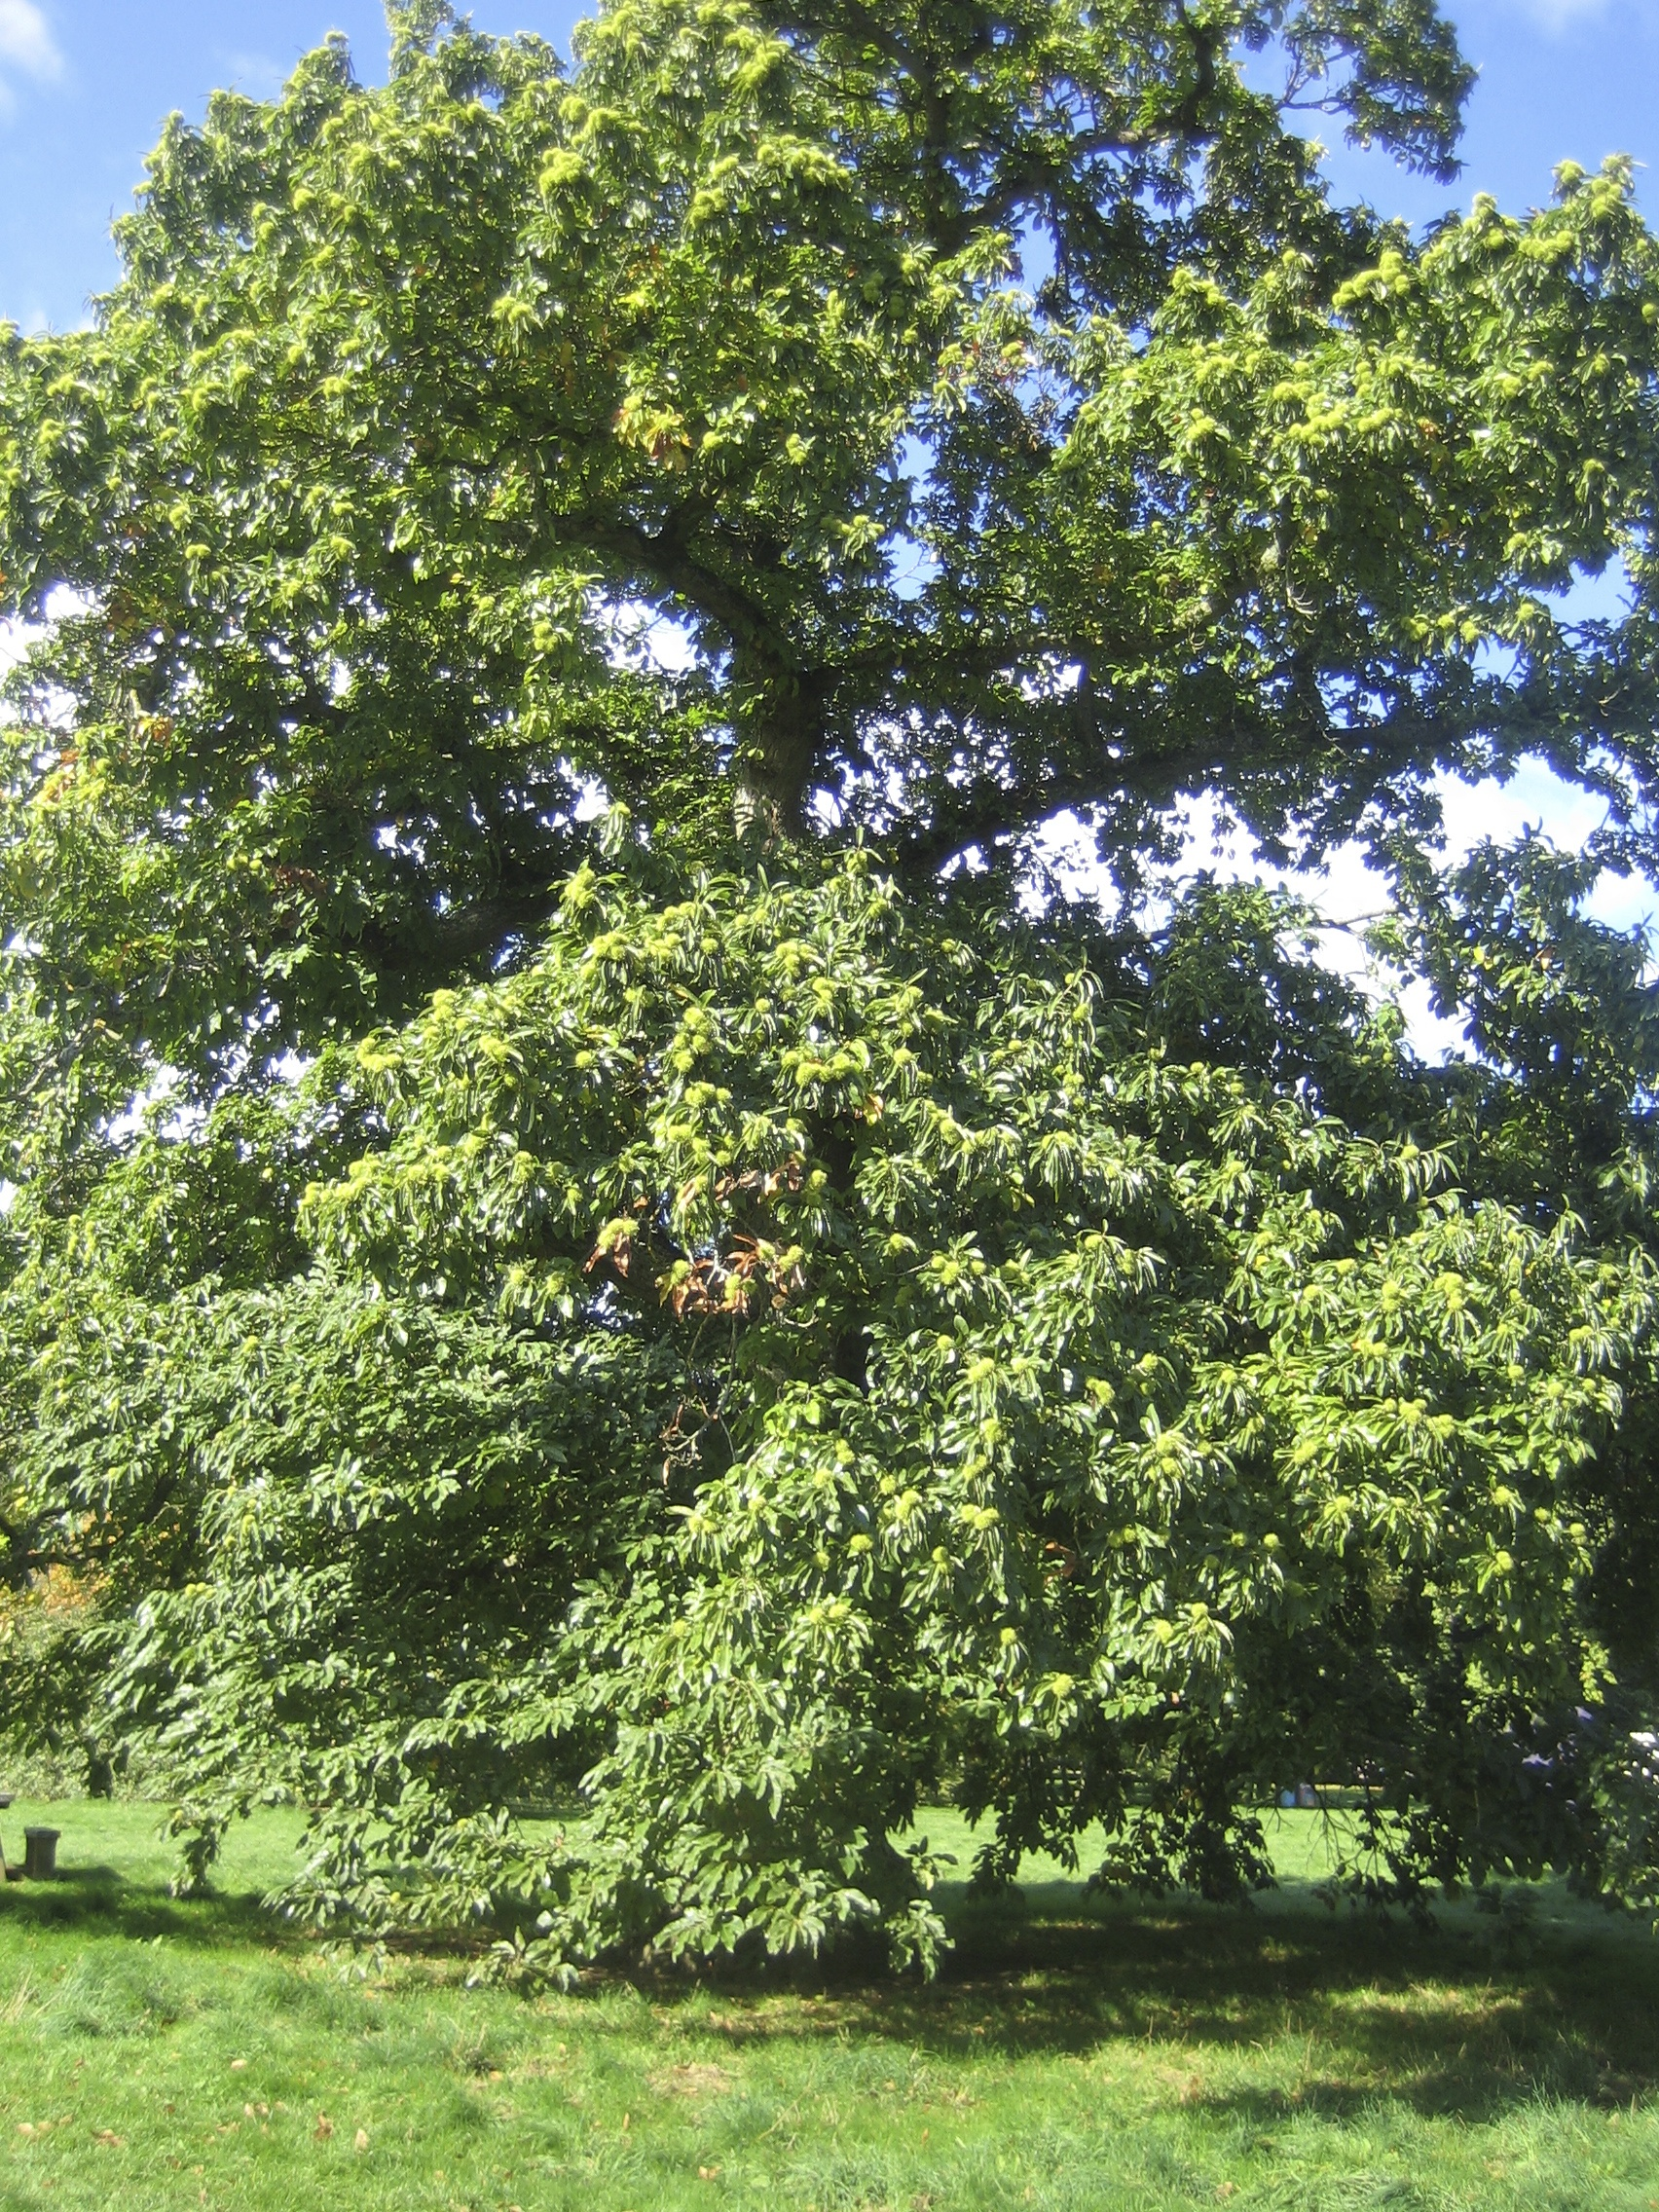 Sweet Chestnut in the autumn